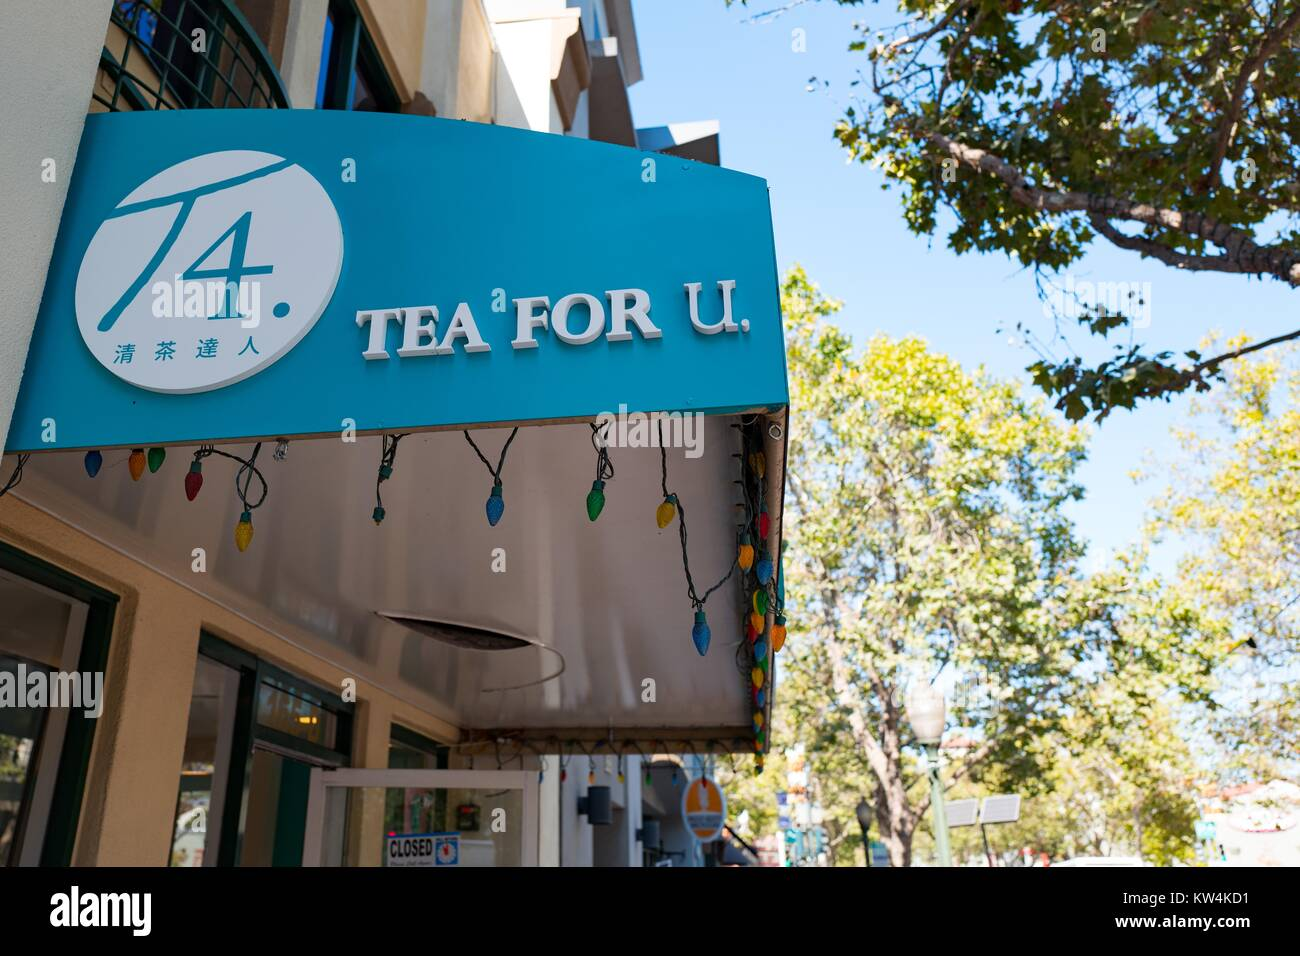 Logo and signage for Tea For U, a Taiwanese boba (bubble) tea cafe on University Avenue in the Silicon Valley town Stock Photo